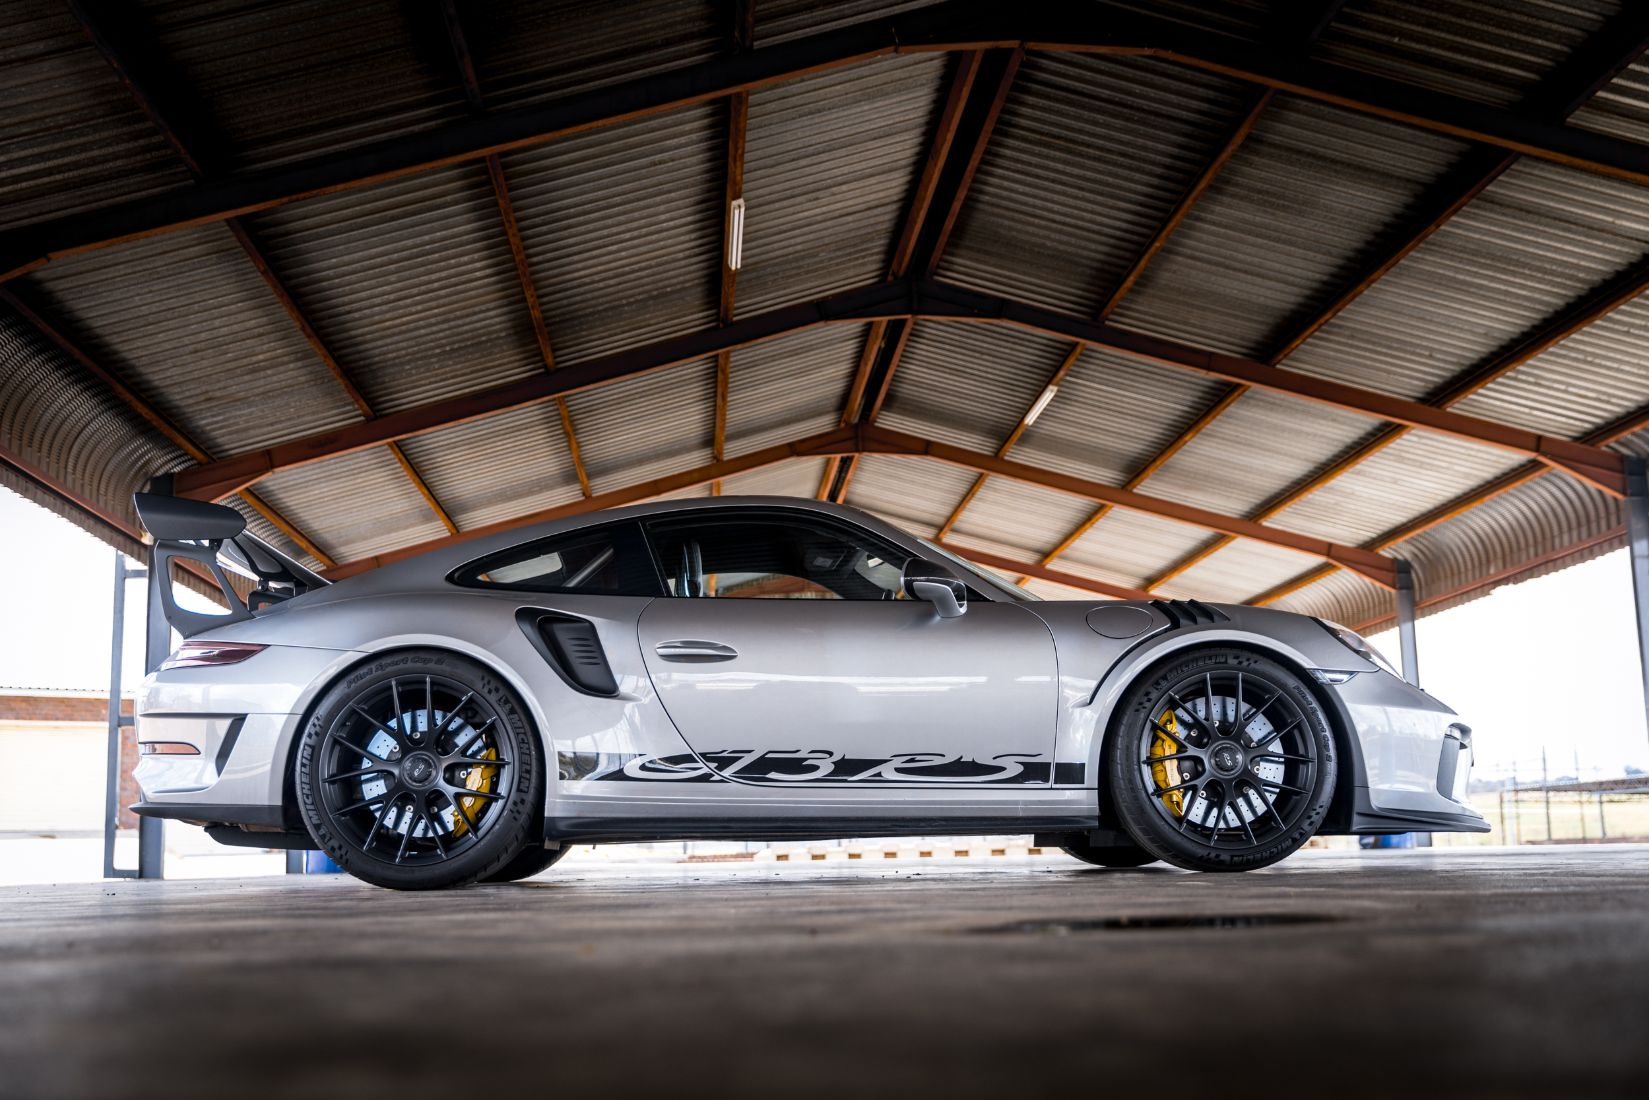 The Porsche 911 GT3 RS's performance repertoire will leave you spellbound and speechless